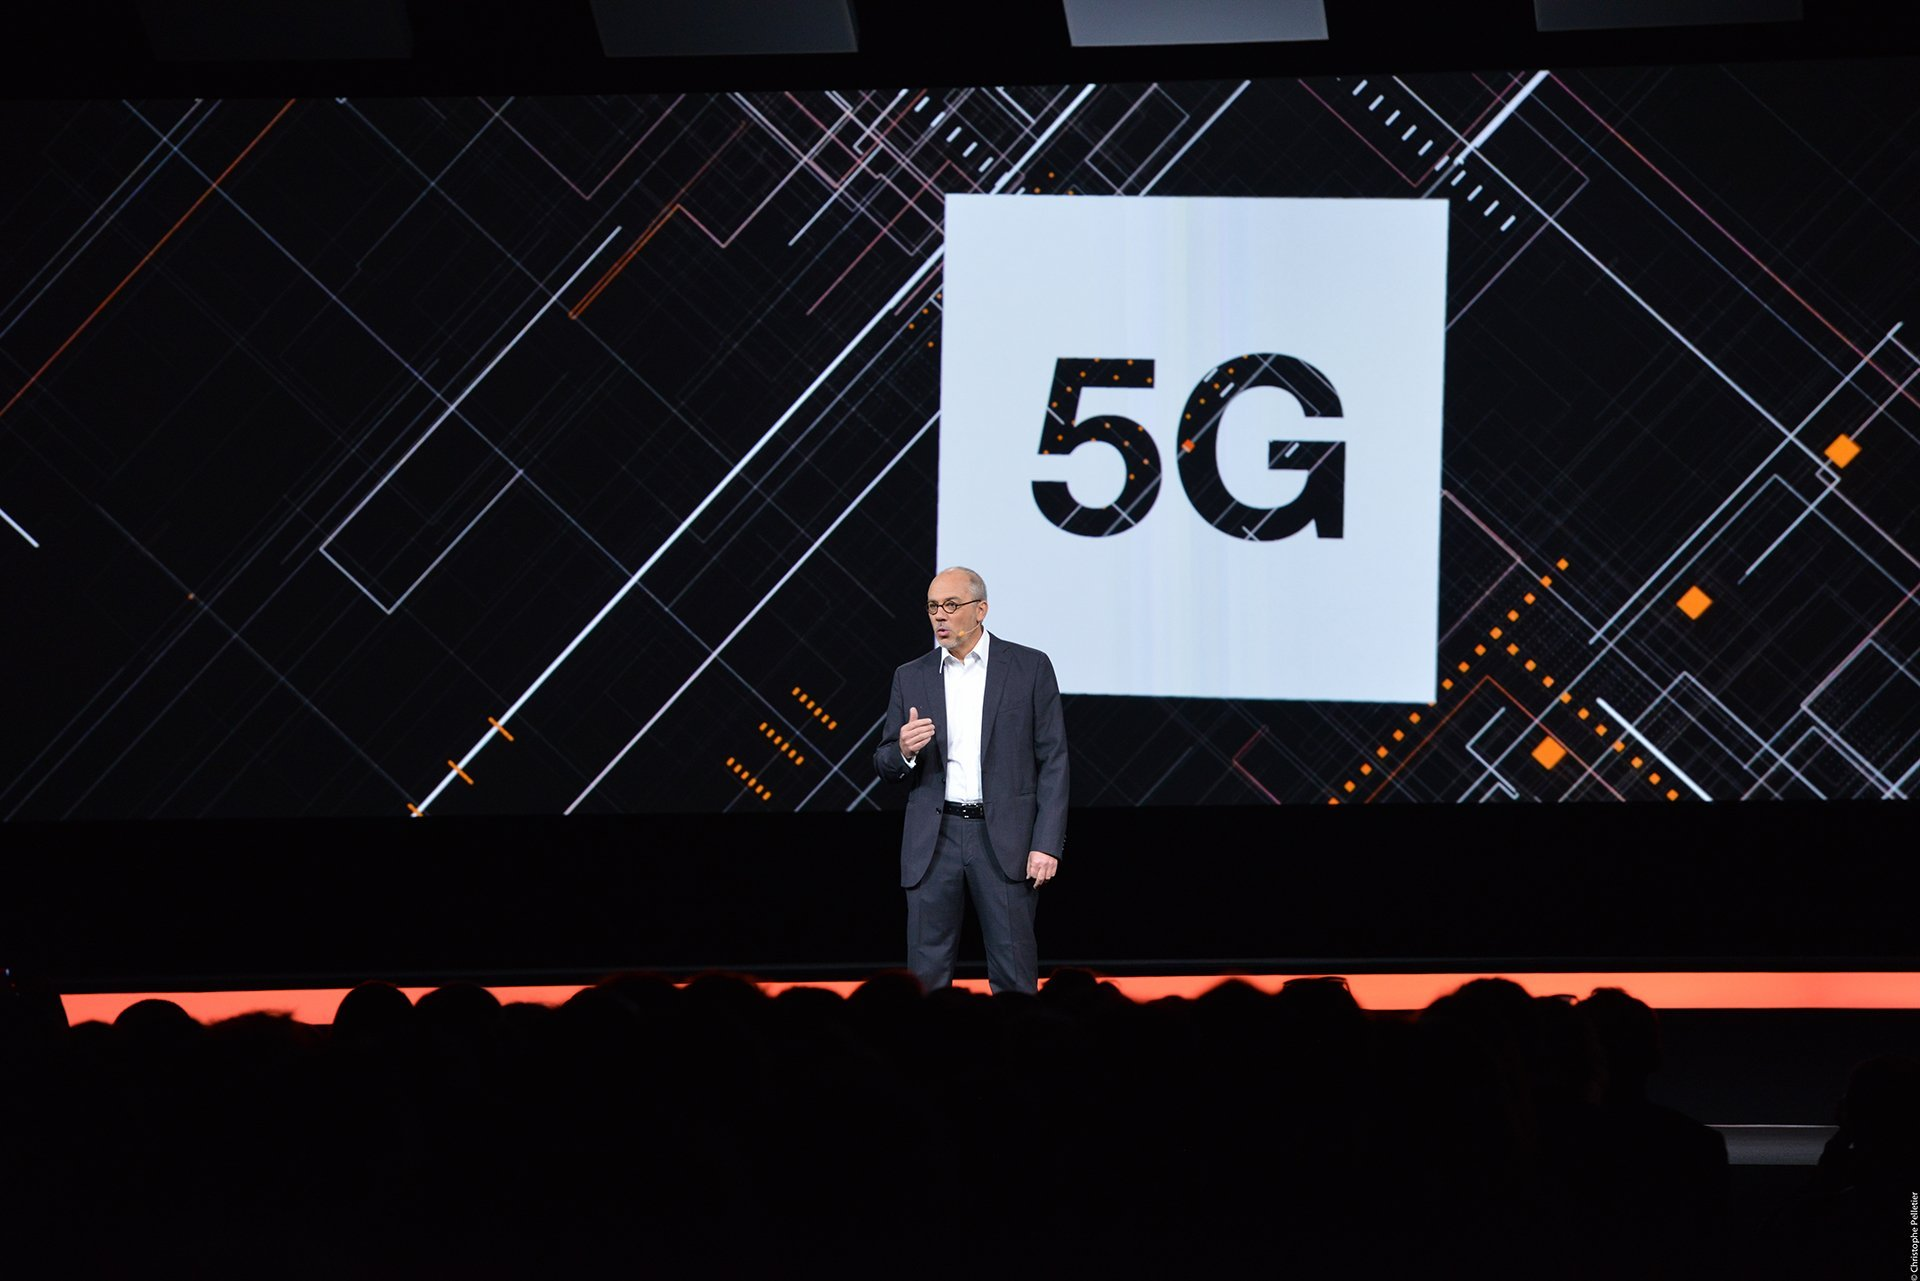 5G : Orange à Marseille, Bouygues Telecom à Bordeaux, SFR à Nantes et Toulouse